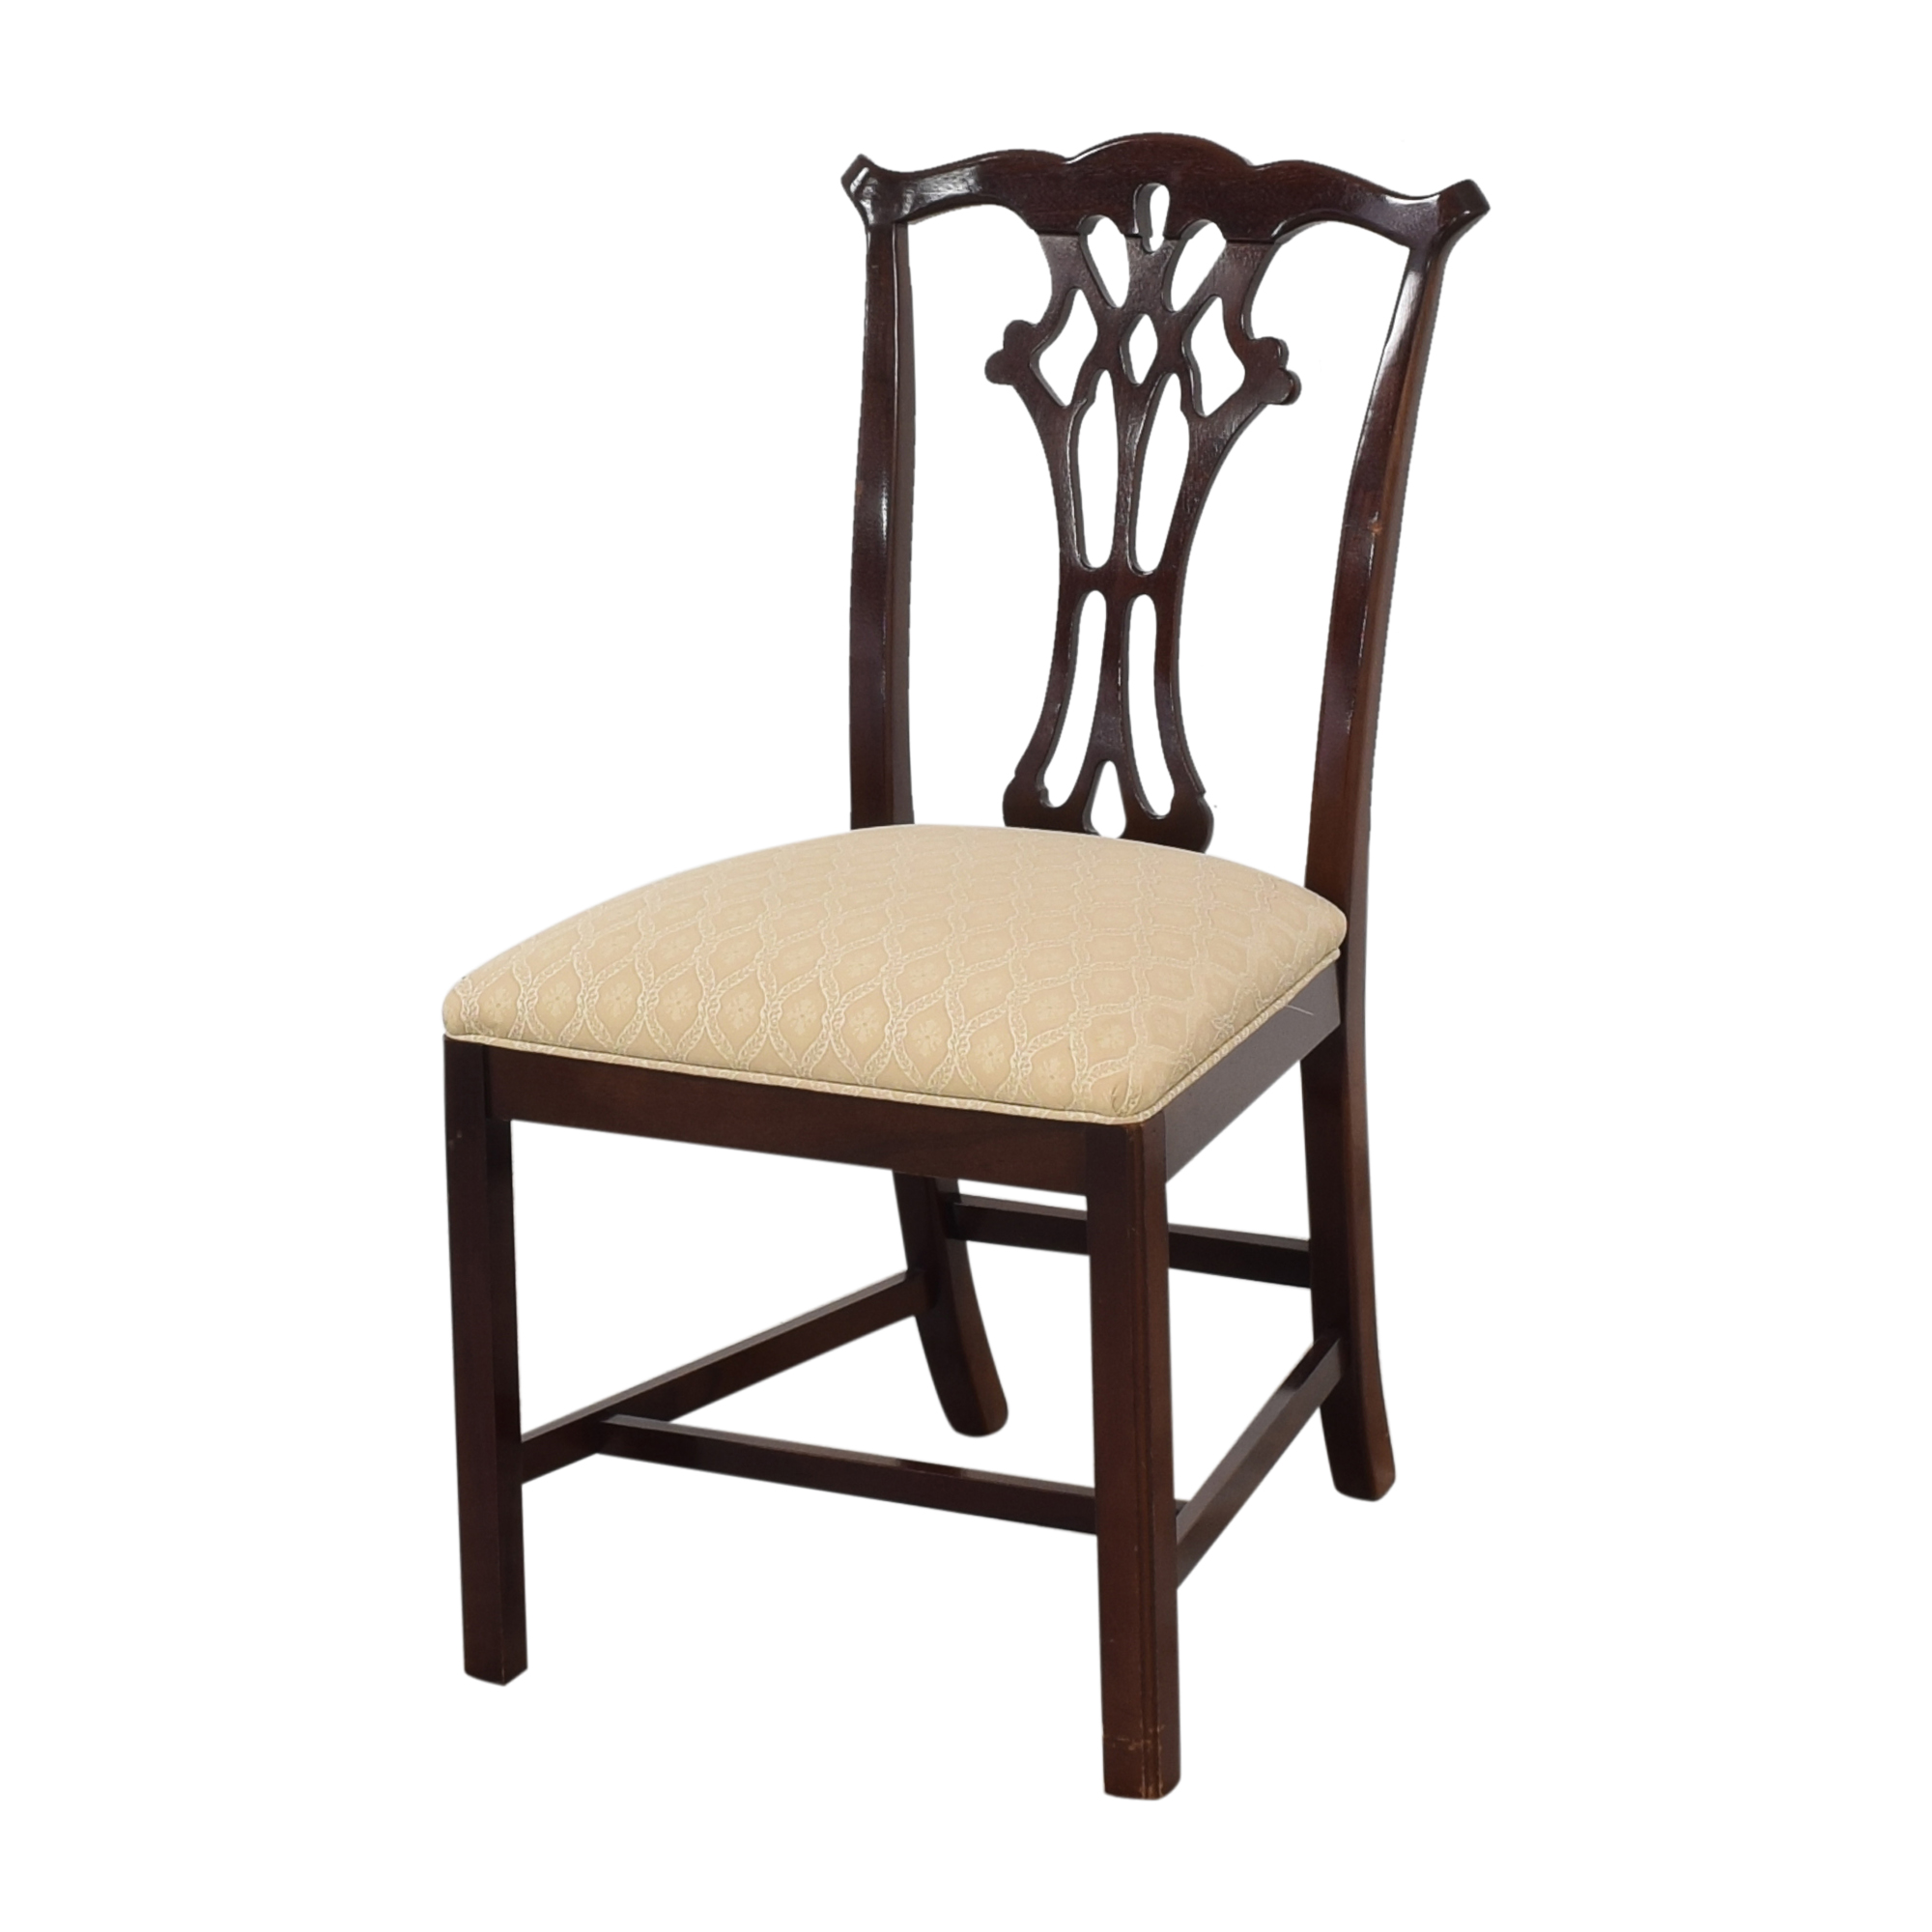 Hickory White Hickory White Chippendale Dining Chairs second hand